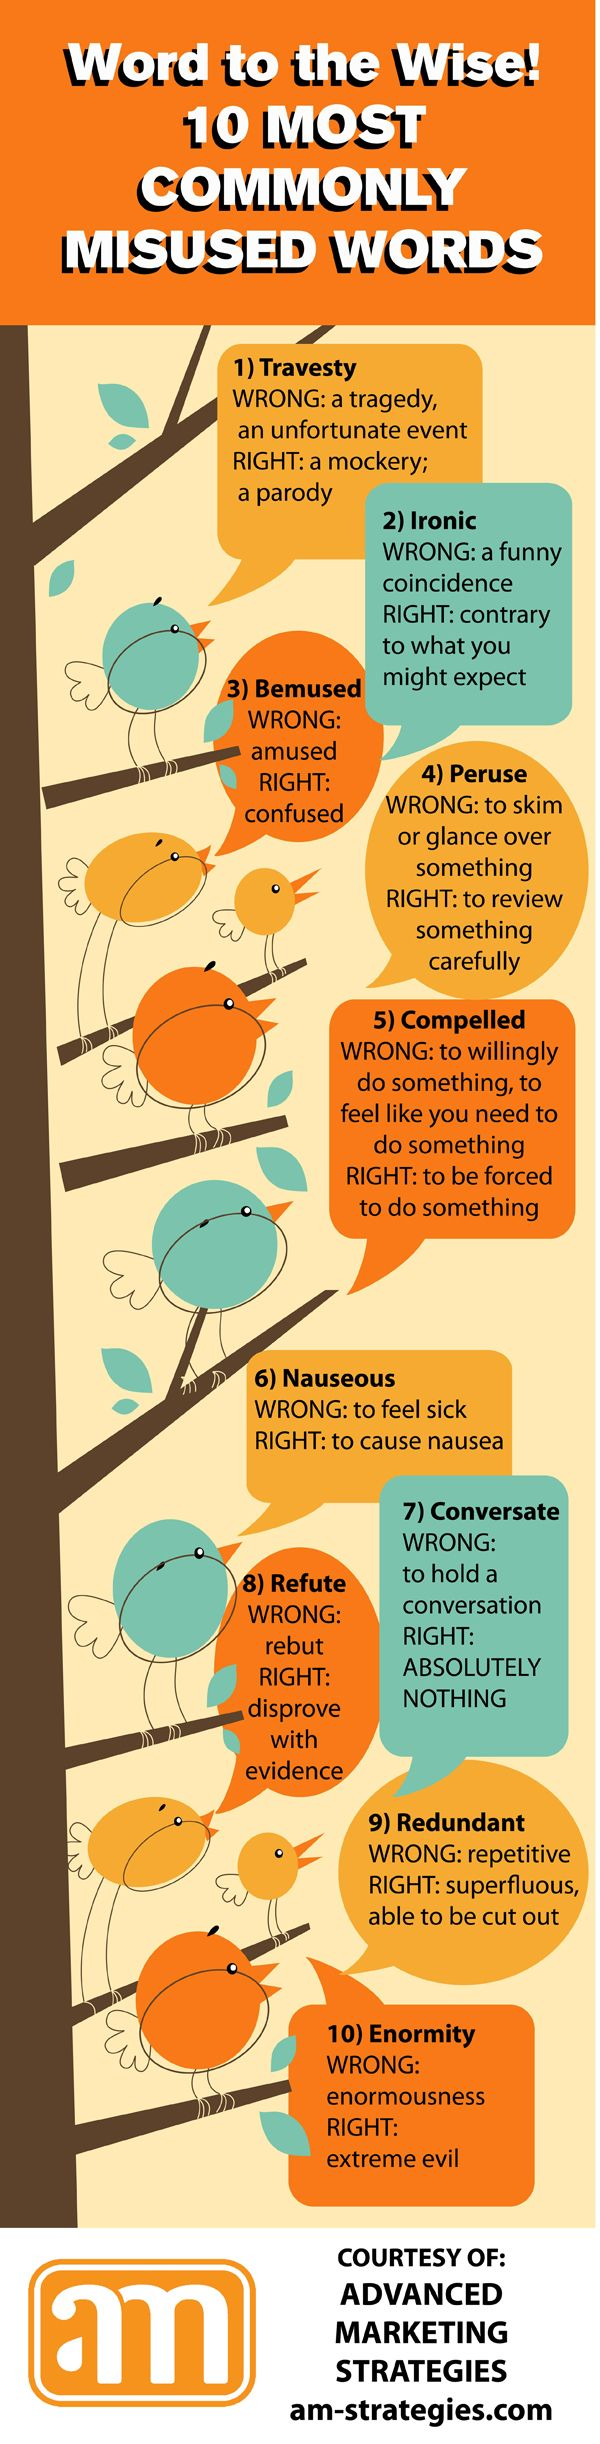 10 commonly misused words and cute birdies to make ignorance of them less painful.. I use a lot of these wrong. Ahhhh!